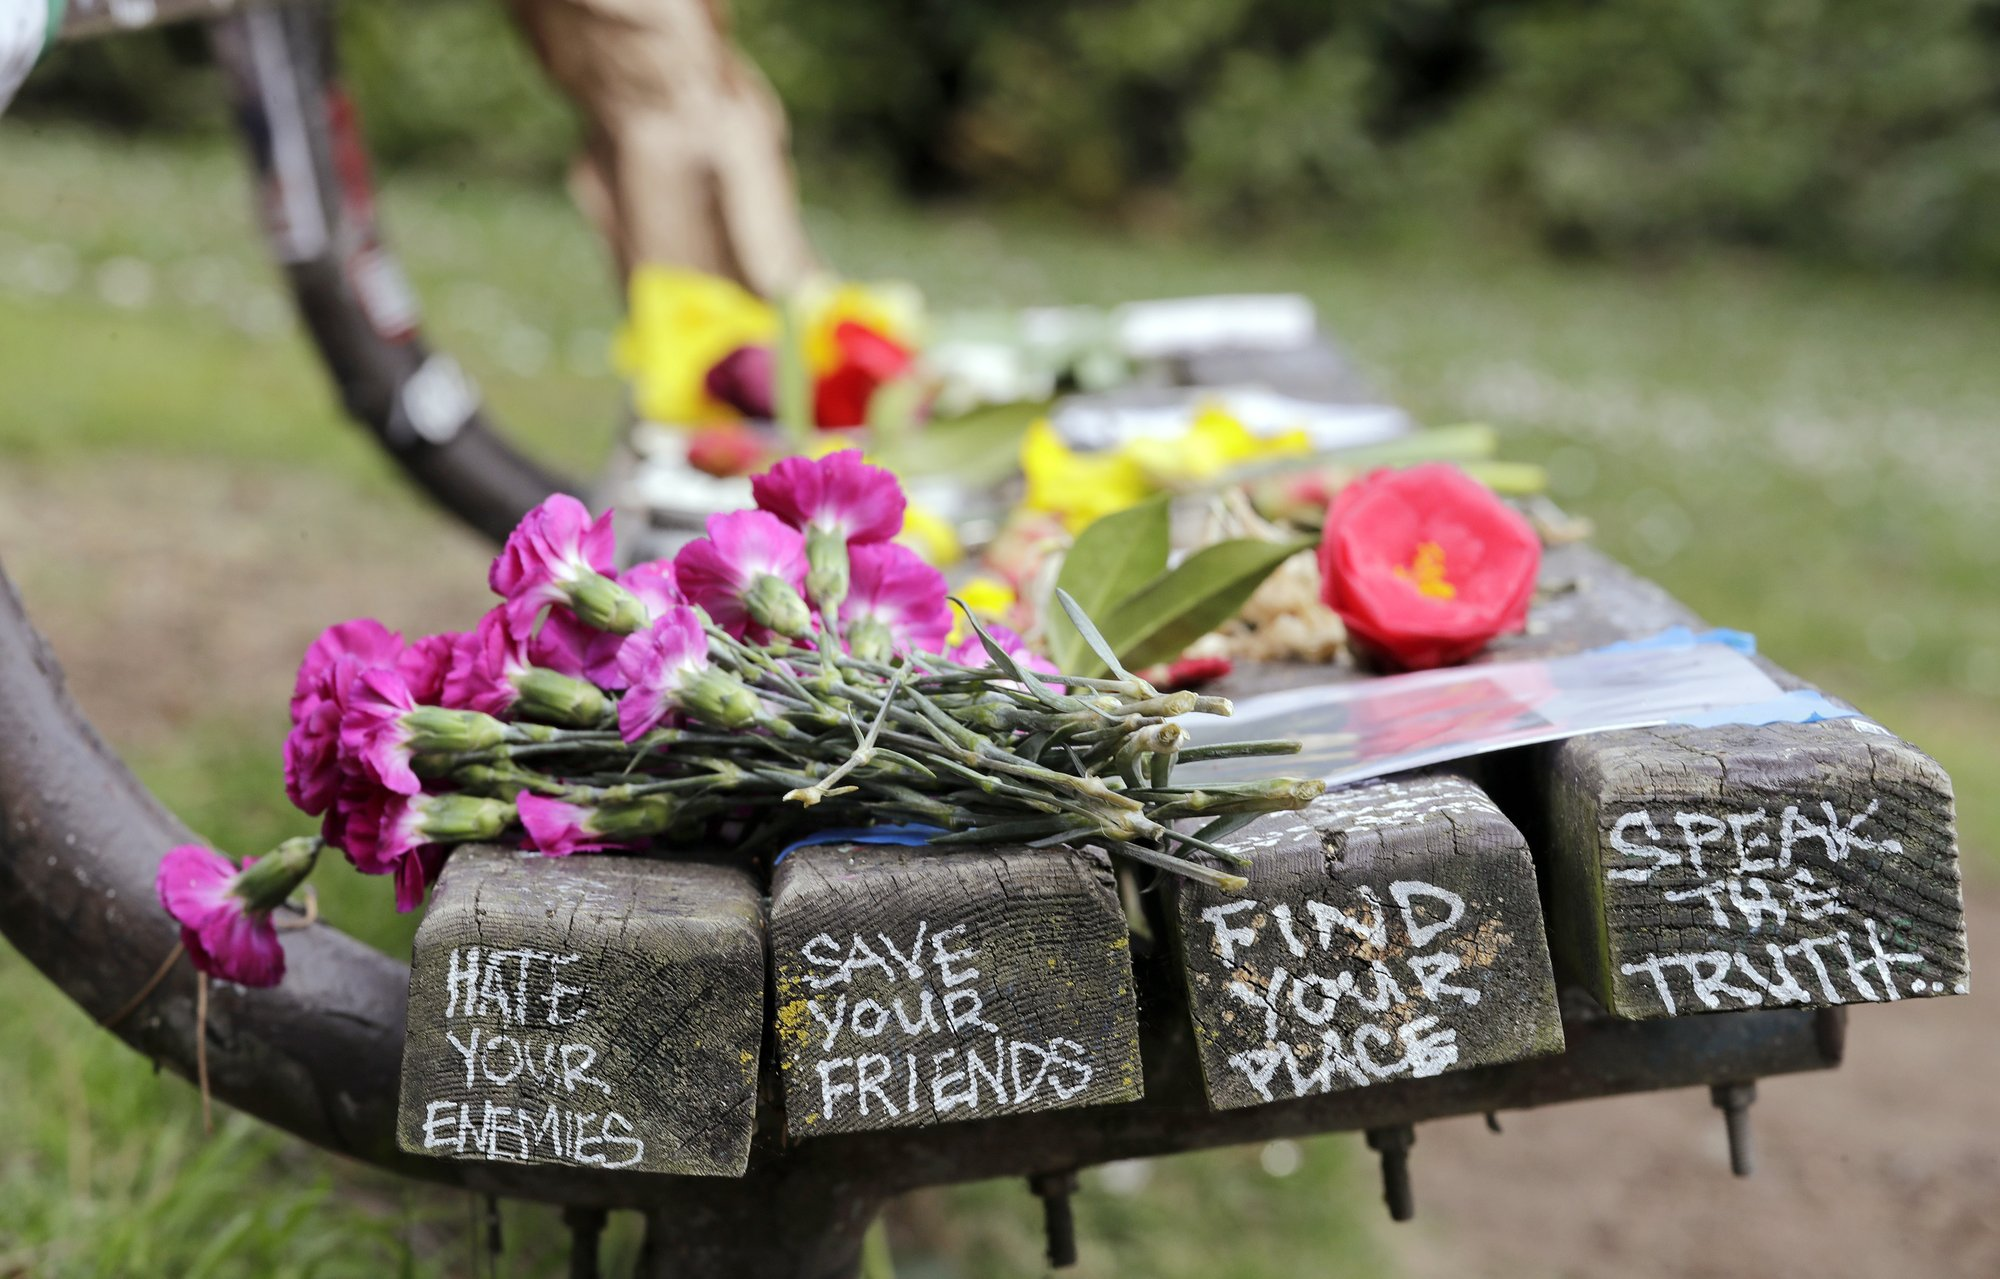 Flowers honoring the late Kurt Cobain appear on a park bench in Seattle_1554498439365.jpeg.jpg